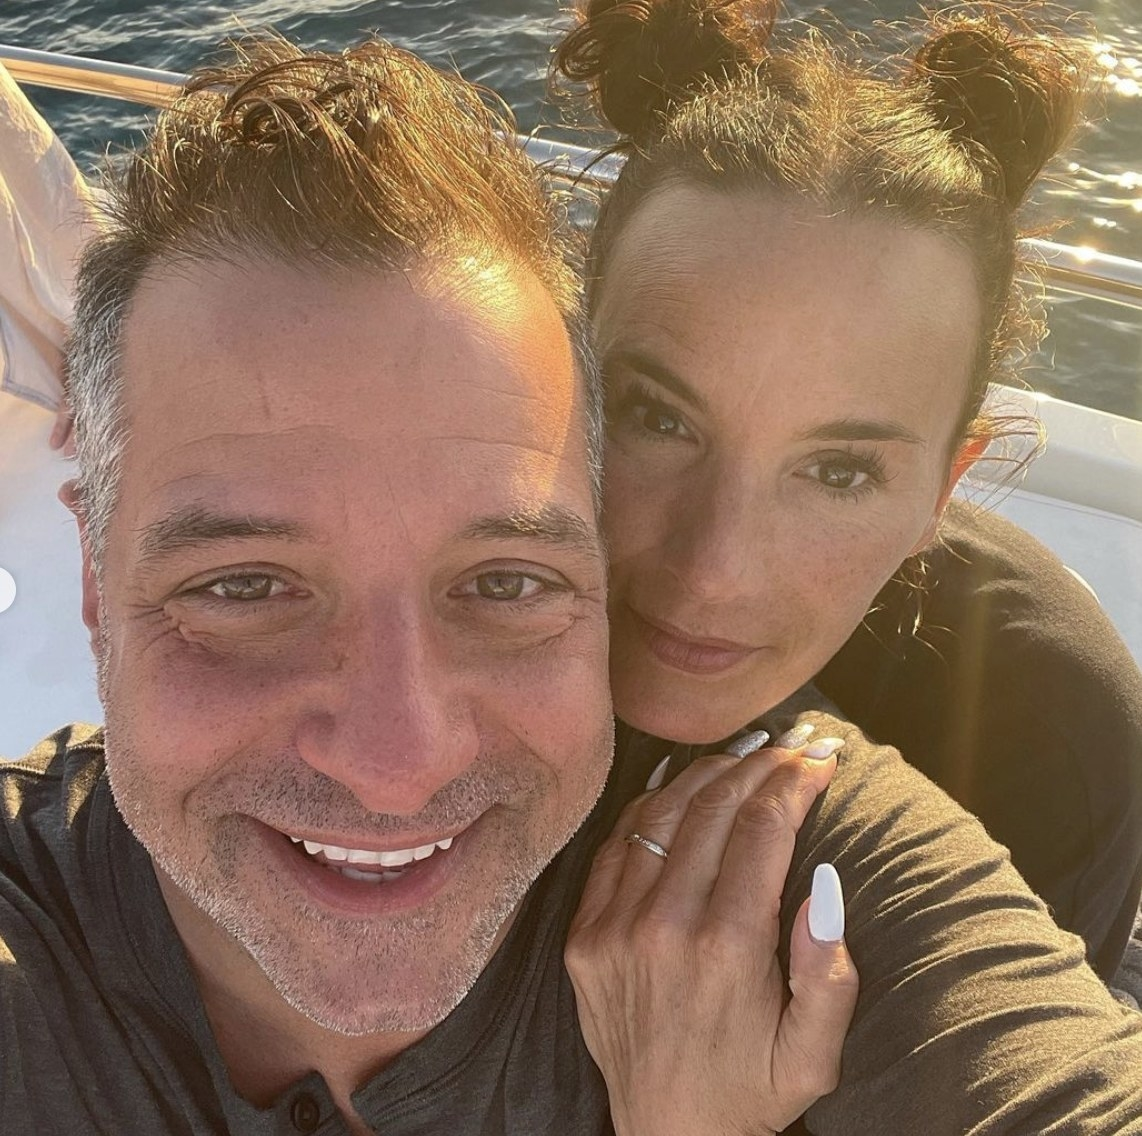 Marc takes a selfie on a boat with Heidi